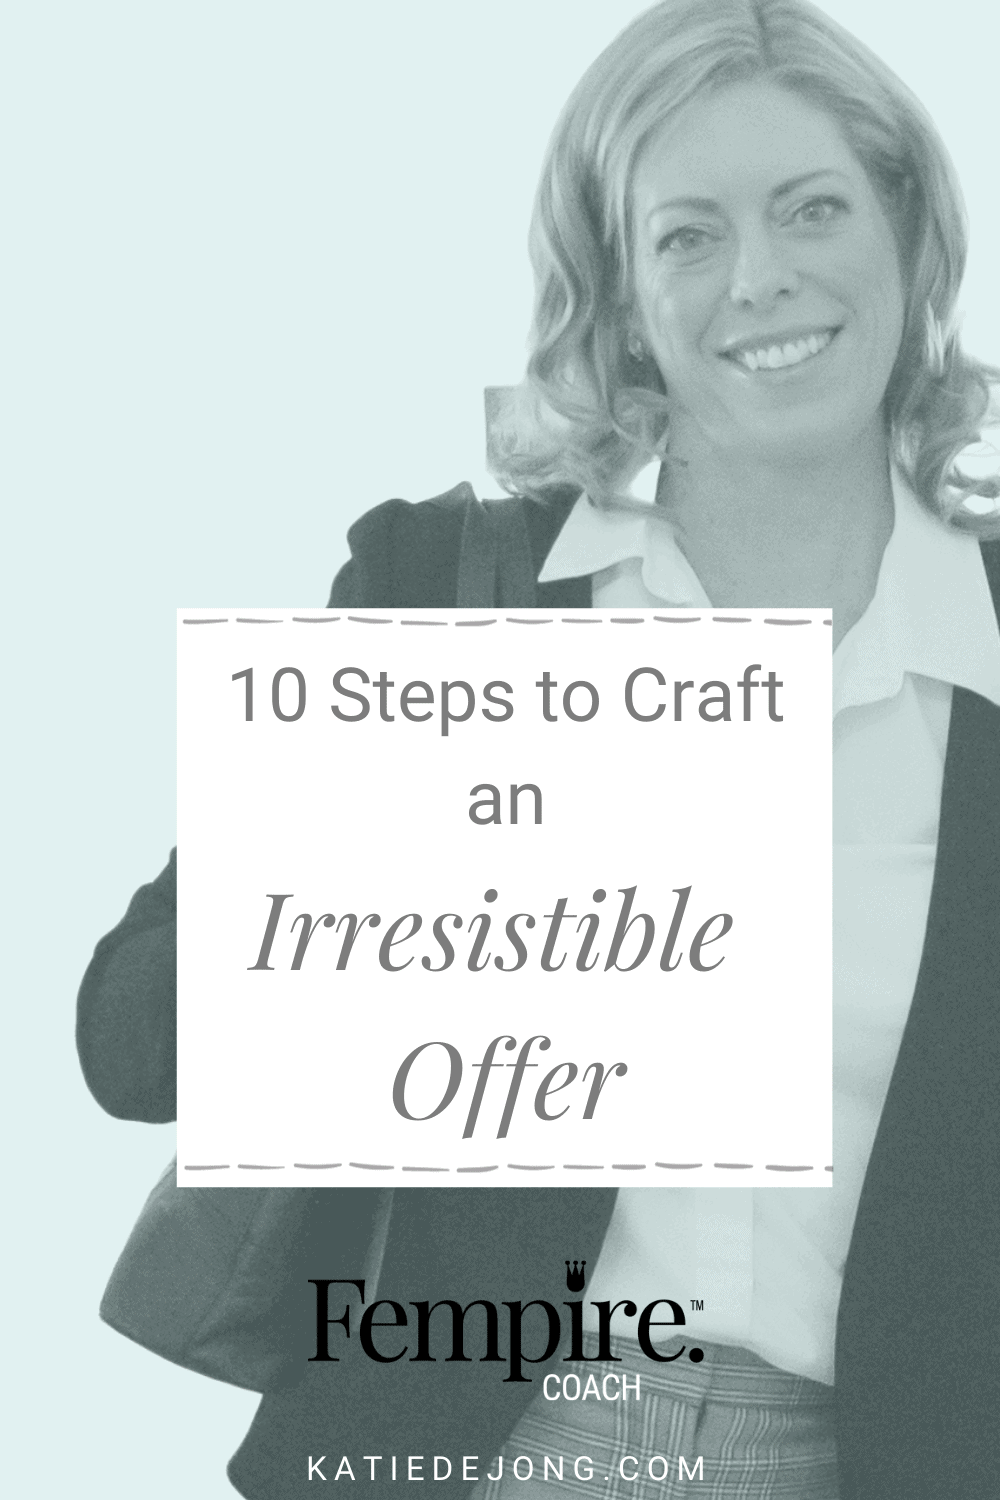 There are ten things you need to consider when crafting an offer to pitch to your audience so that you can guarantee that your offer converts your prospects into paying clients. Read on to discover what they are. #fempire #fempirecoach #marketing #digitalmarketing #entrepreneur #ladyboss #womeninbusiness #businesscoach #womensupportingwomen #workfromhome #successmindset #selling